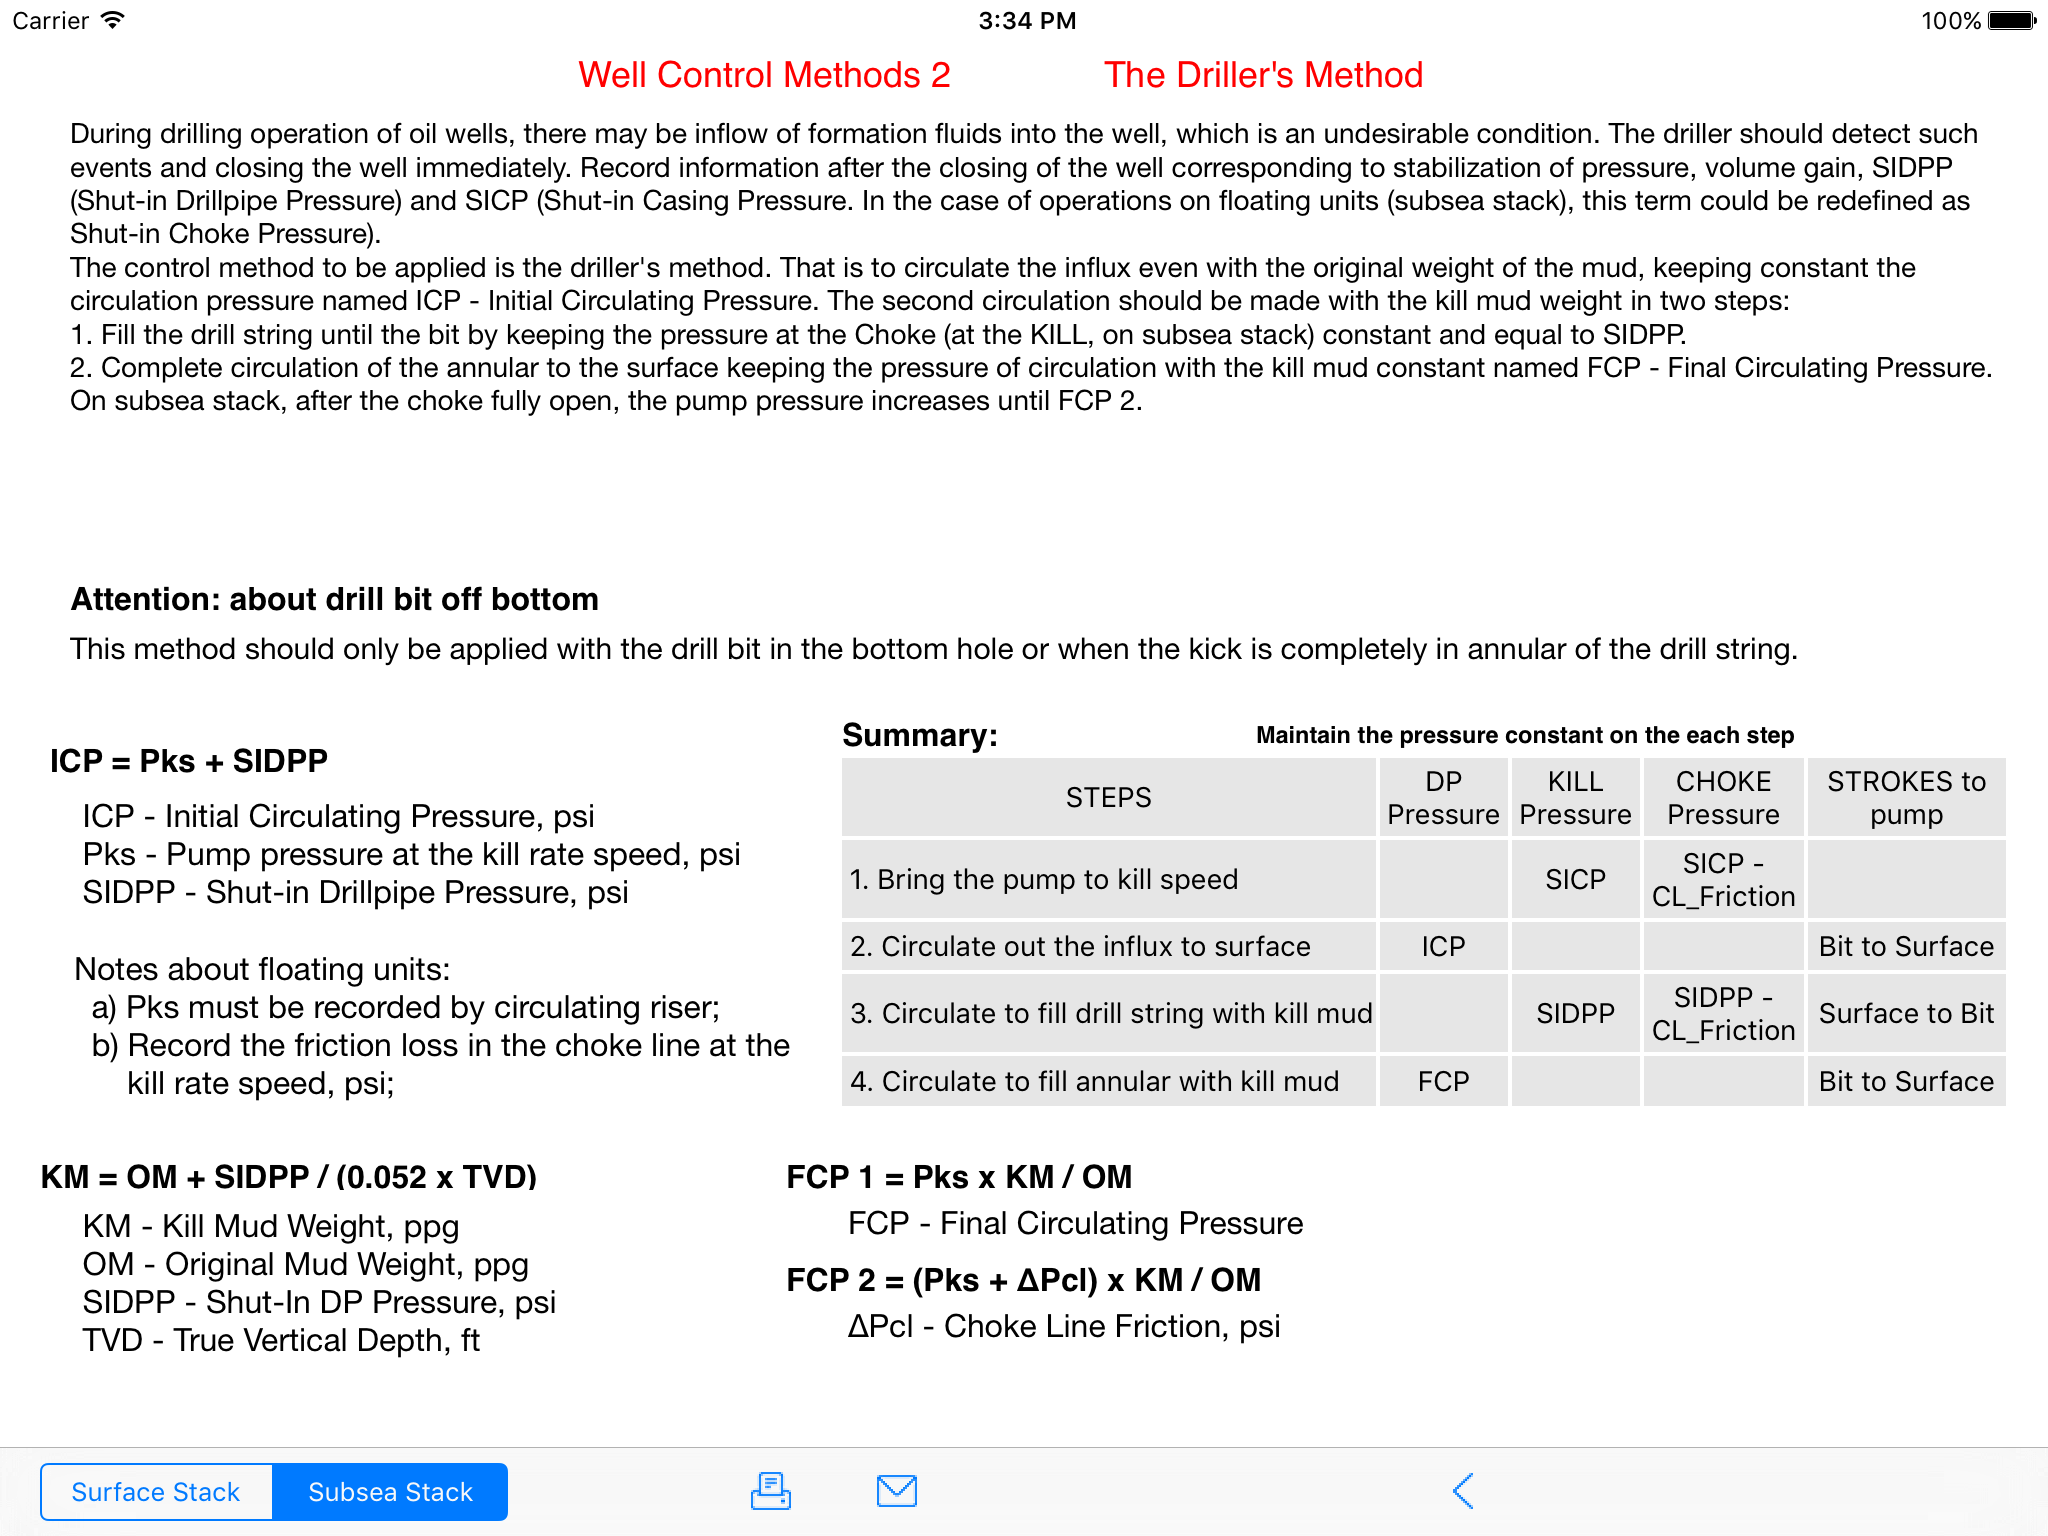 wcmethods2_10_iPad_03SS